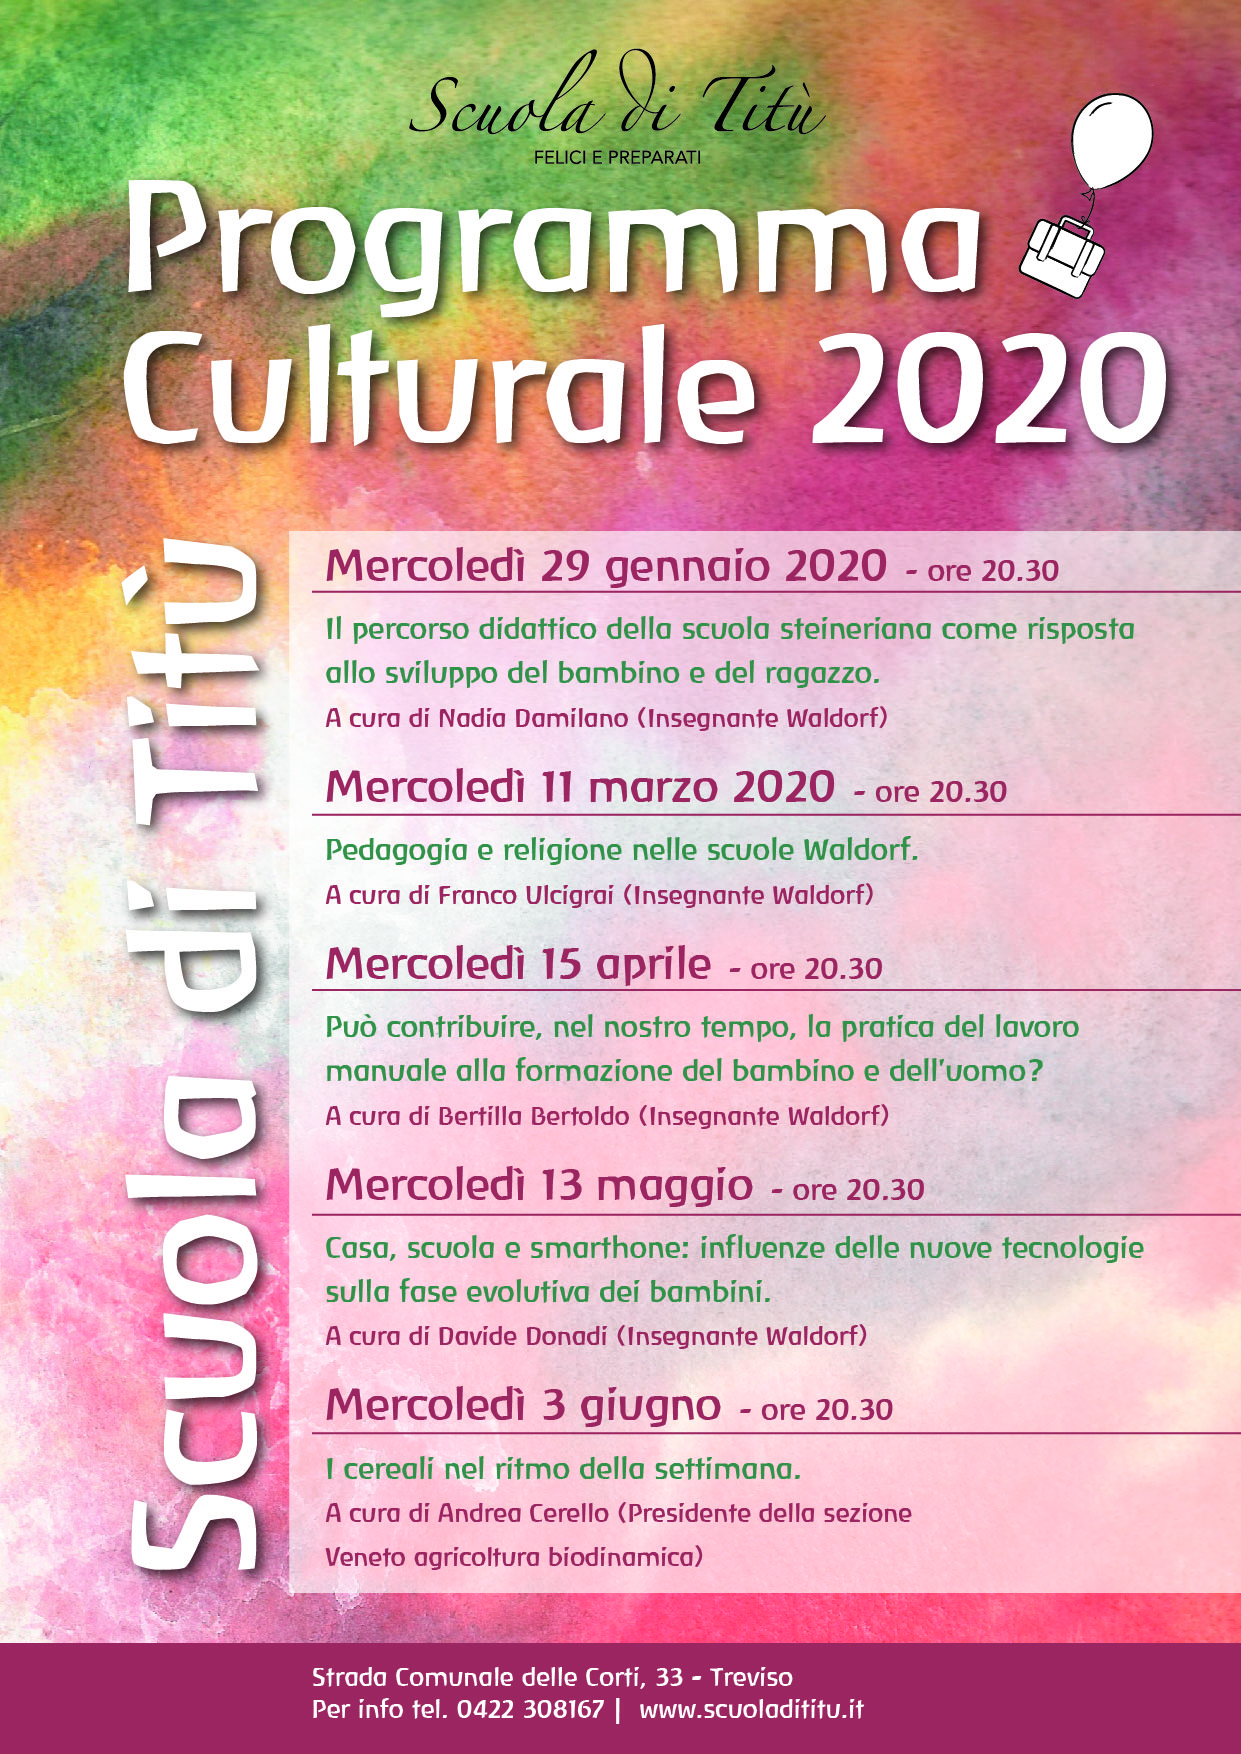 Programma culturale 2020 low